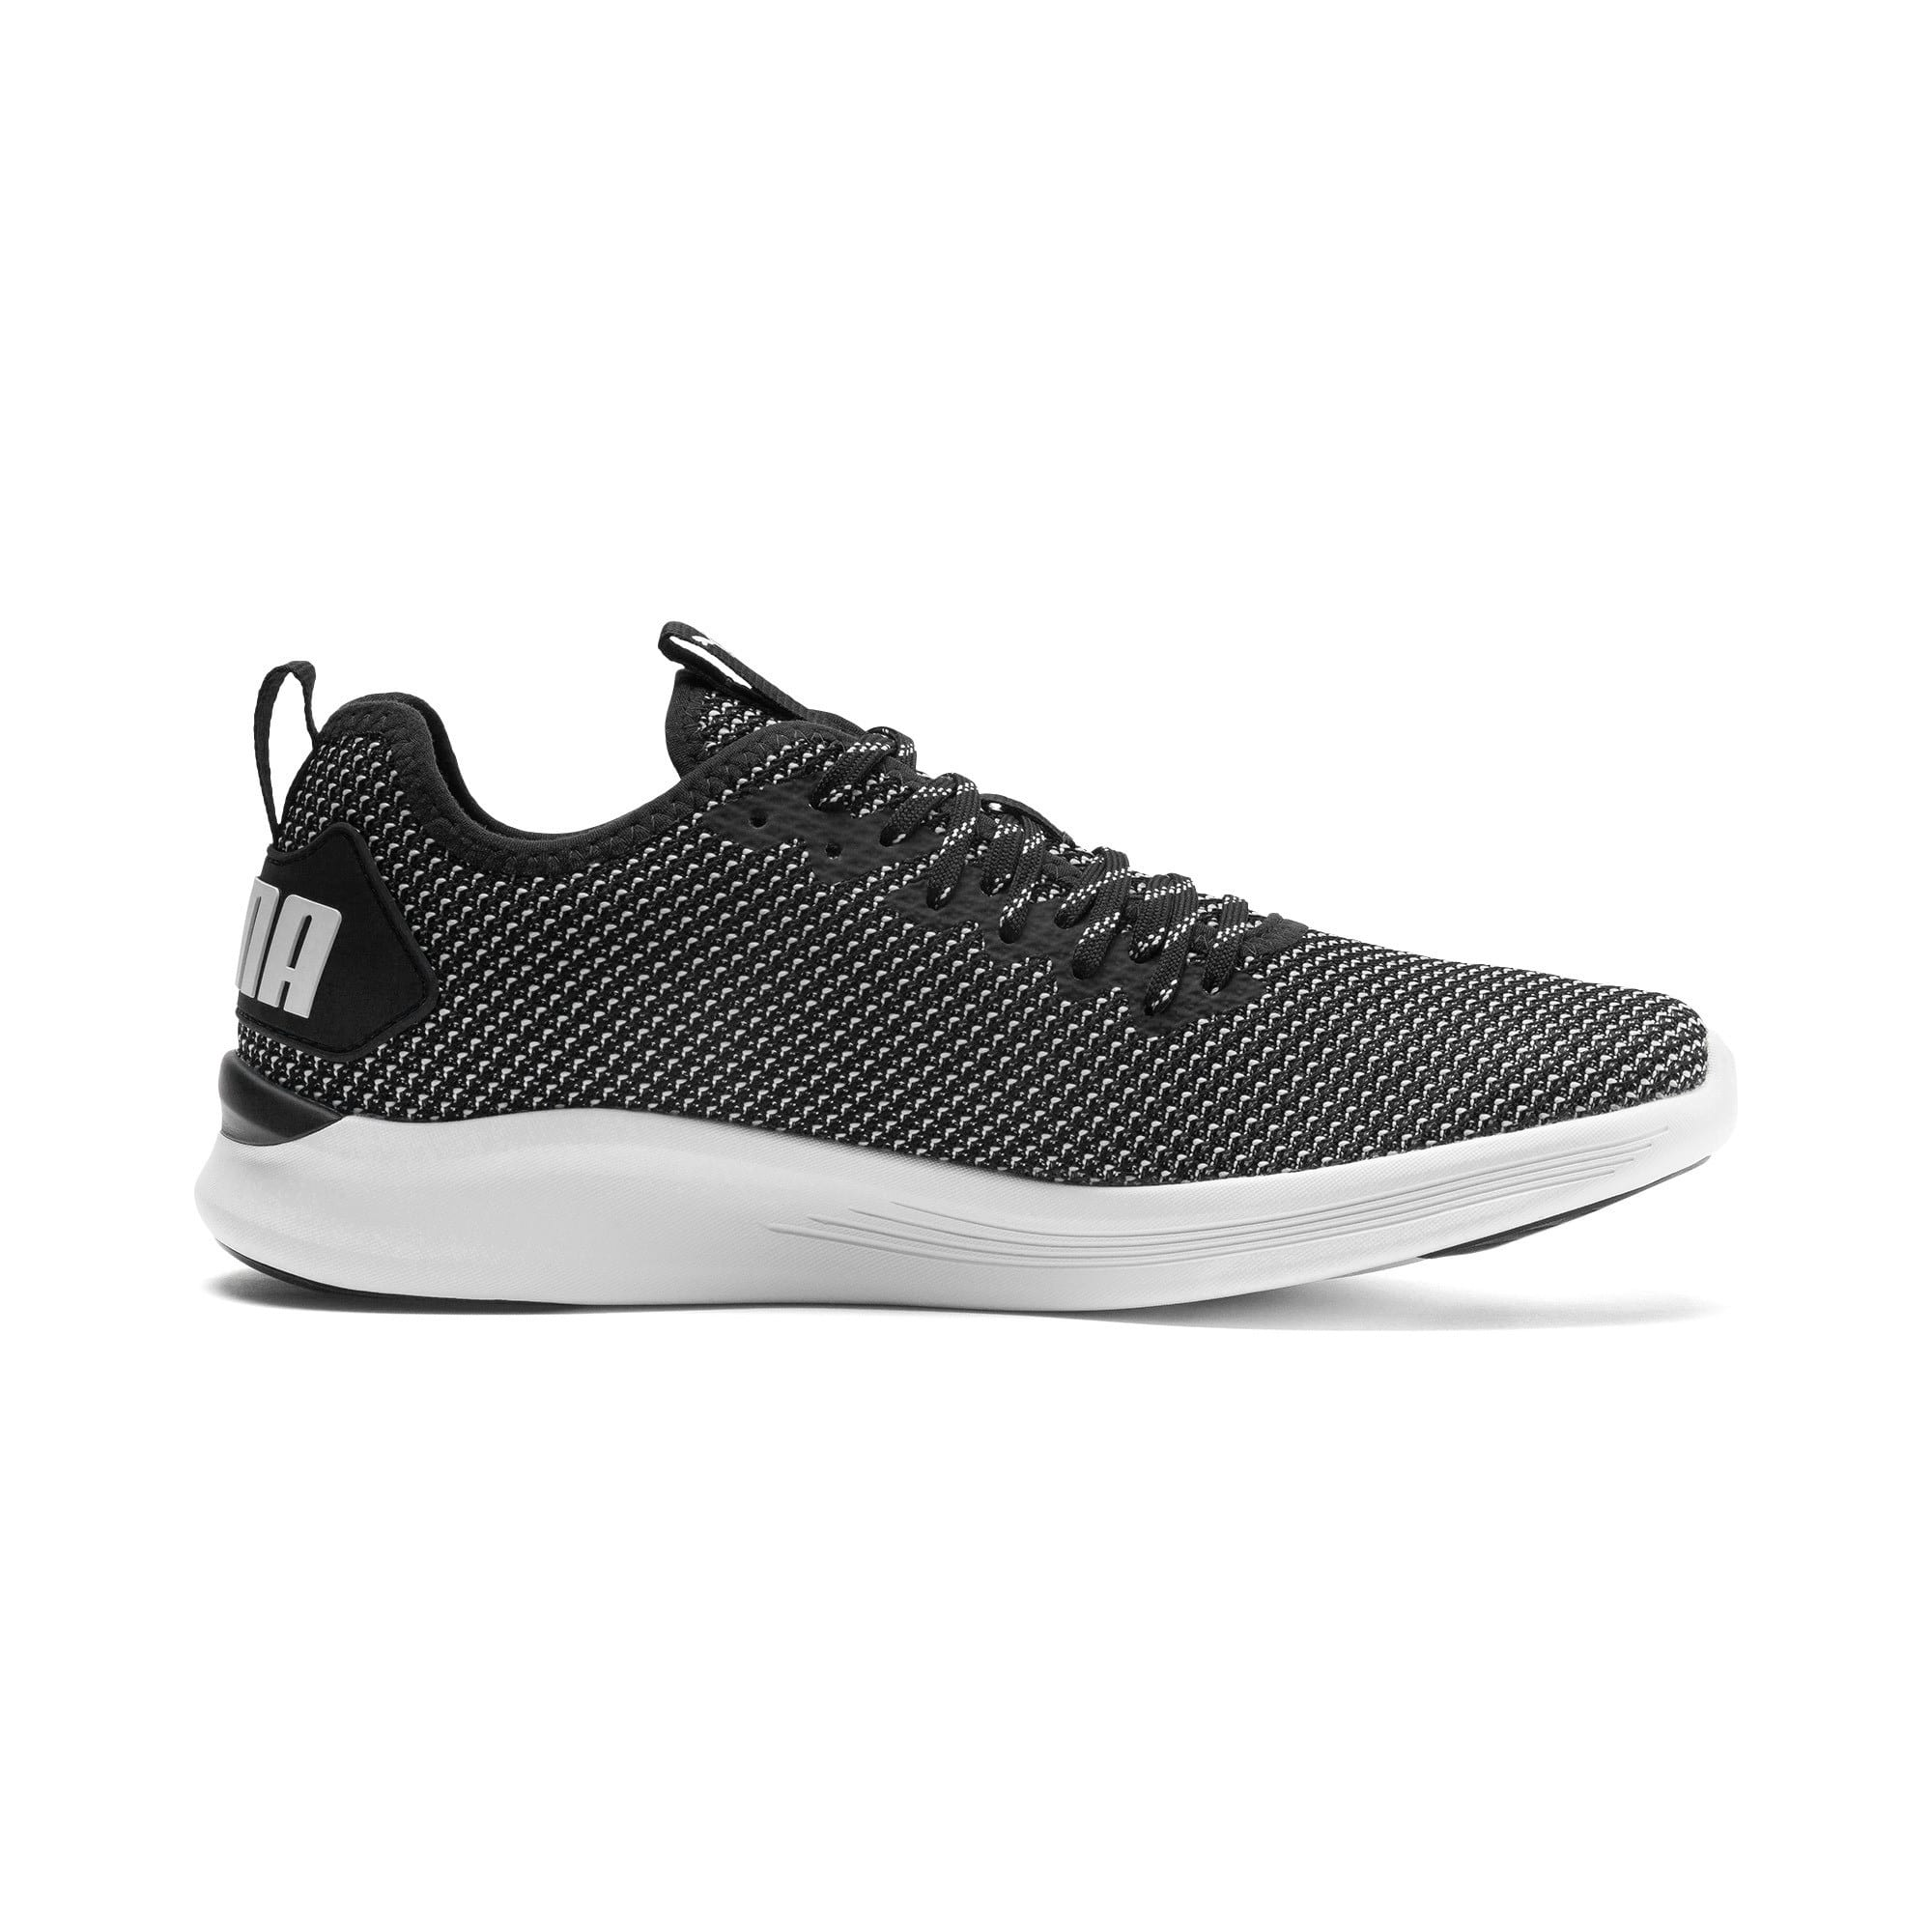 Thumbnail 5 of Chaussure de course IGNITE Flash FS pour homme, Puma Black-Puma White, medium